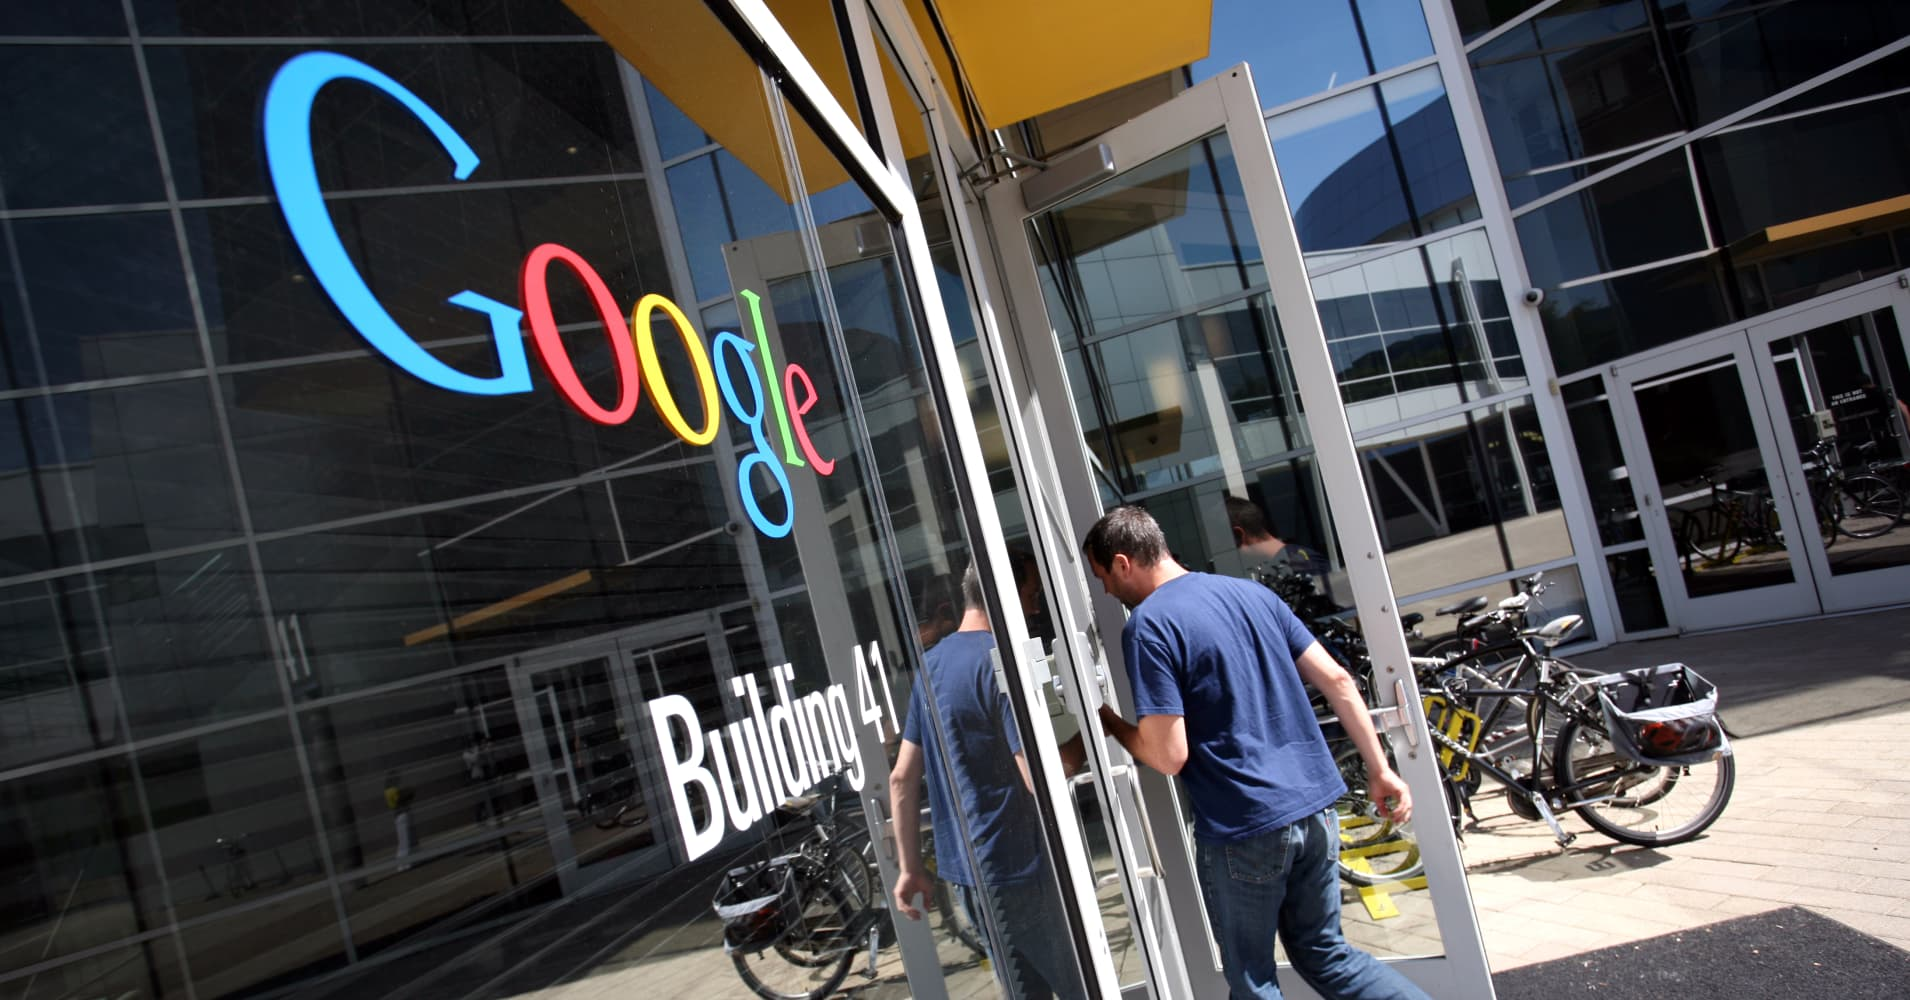 The Google logo is seen at the Google headquarters in Mountain View, California.